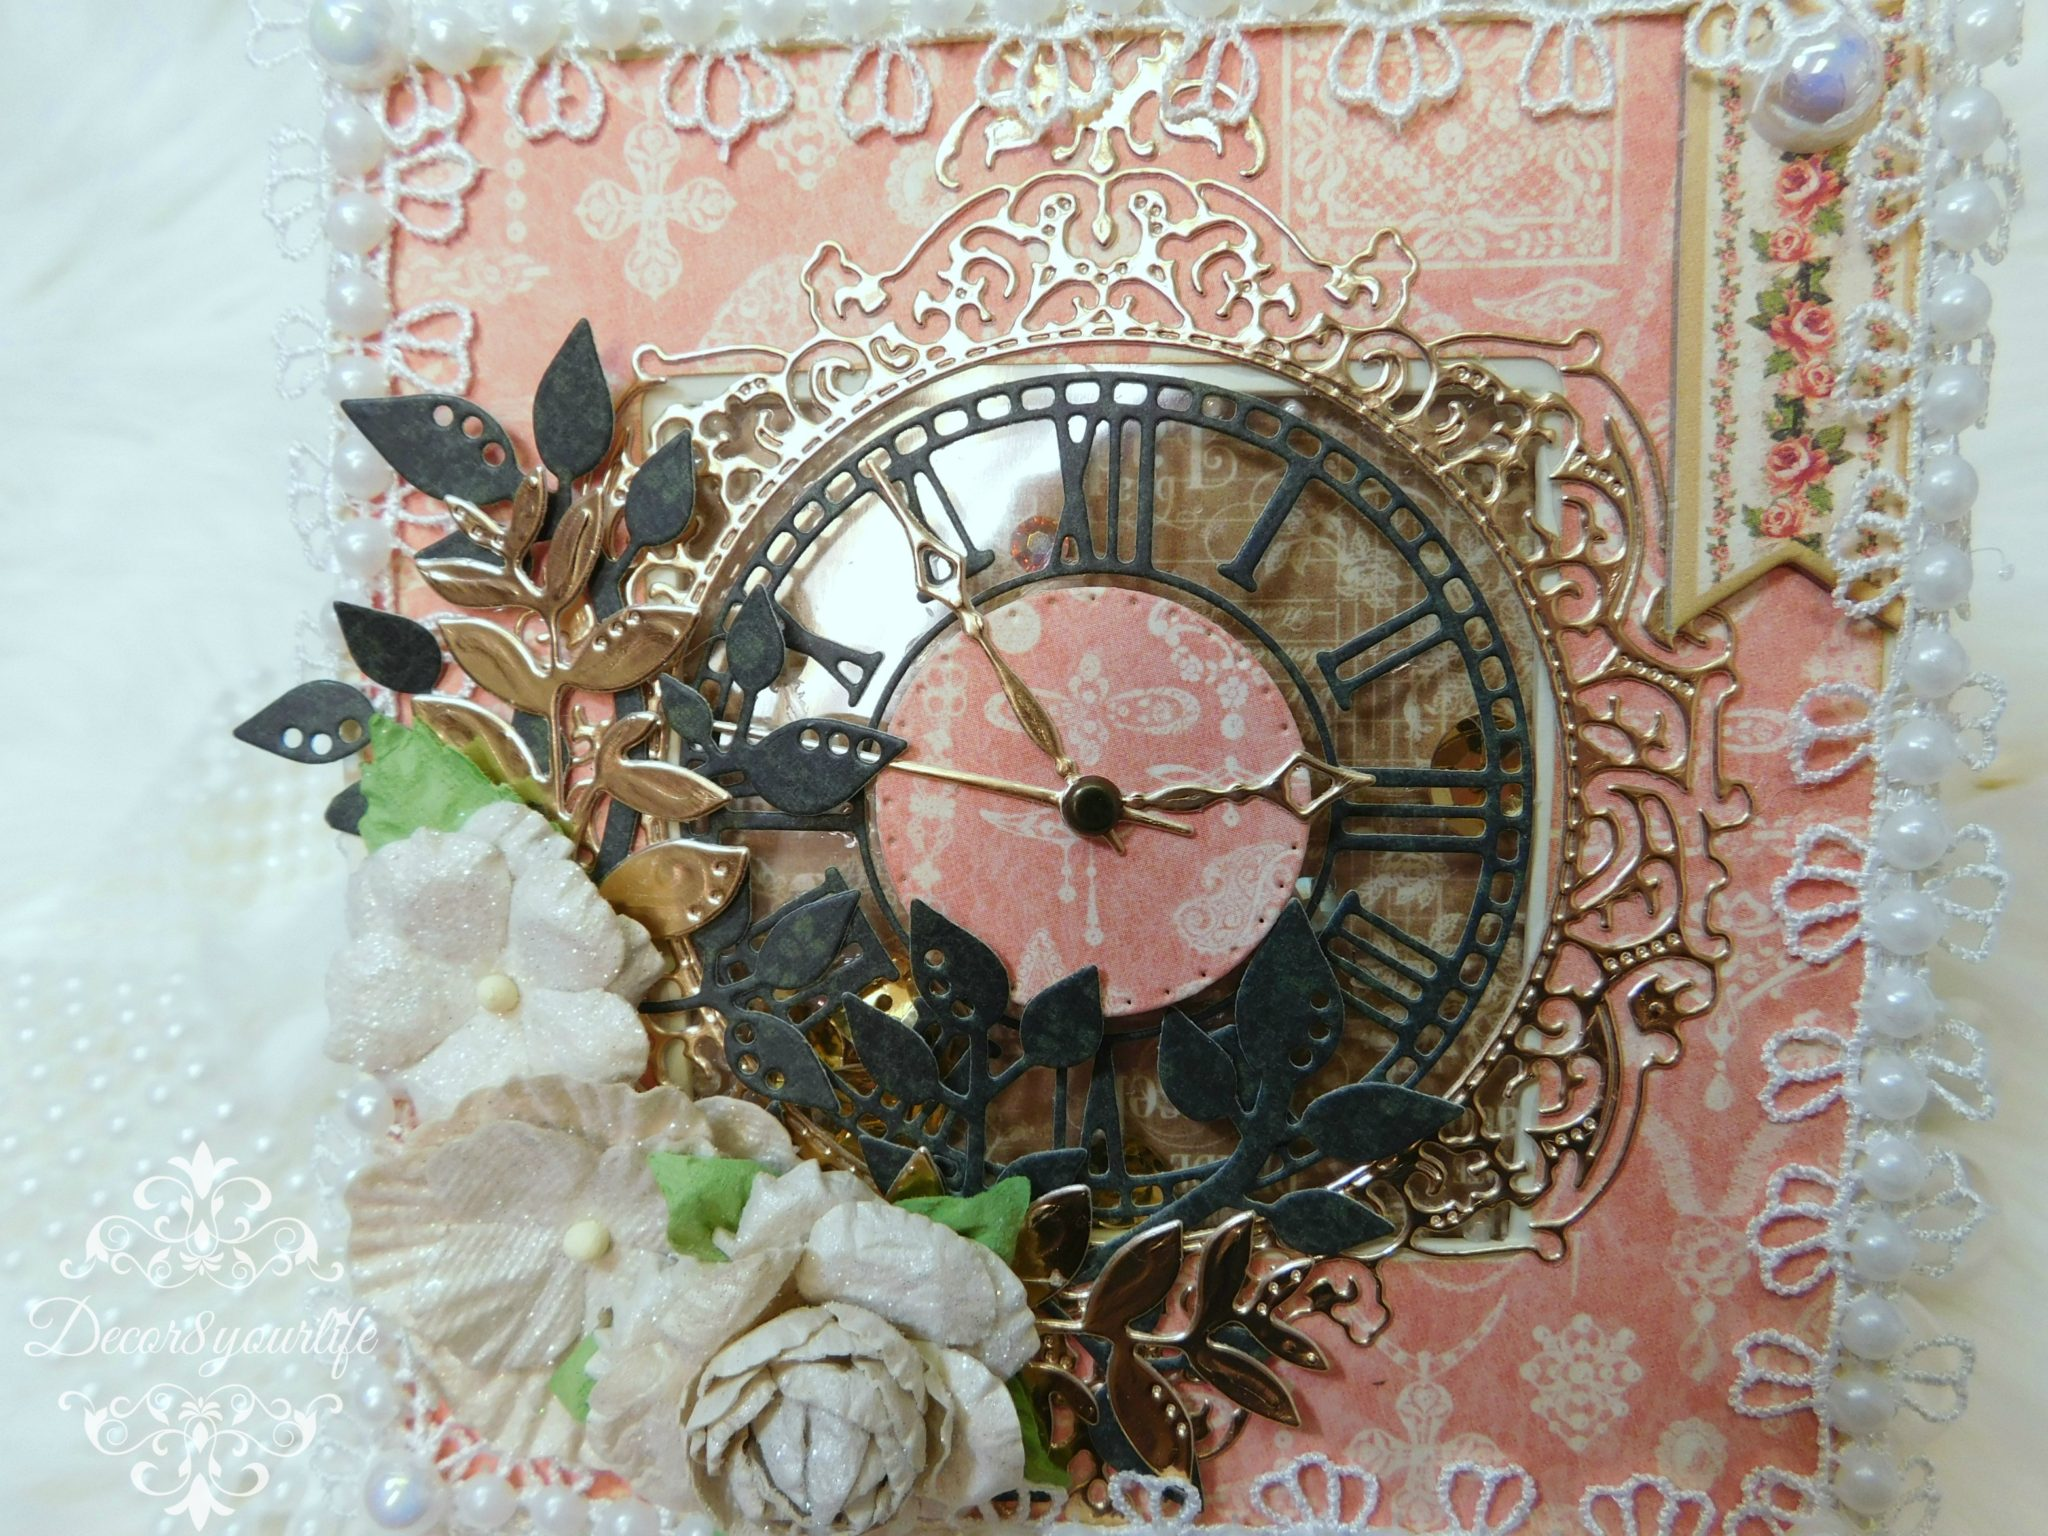 http://www.decor8yourlife.com/wp-content/uploads/2018/05/Graphic-45-Card-Tutorial-13-1.jpg